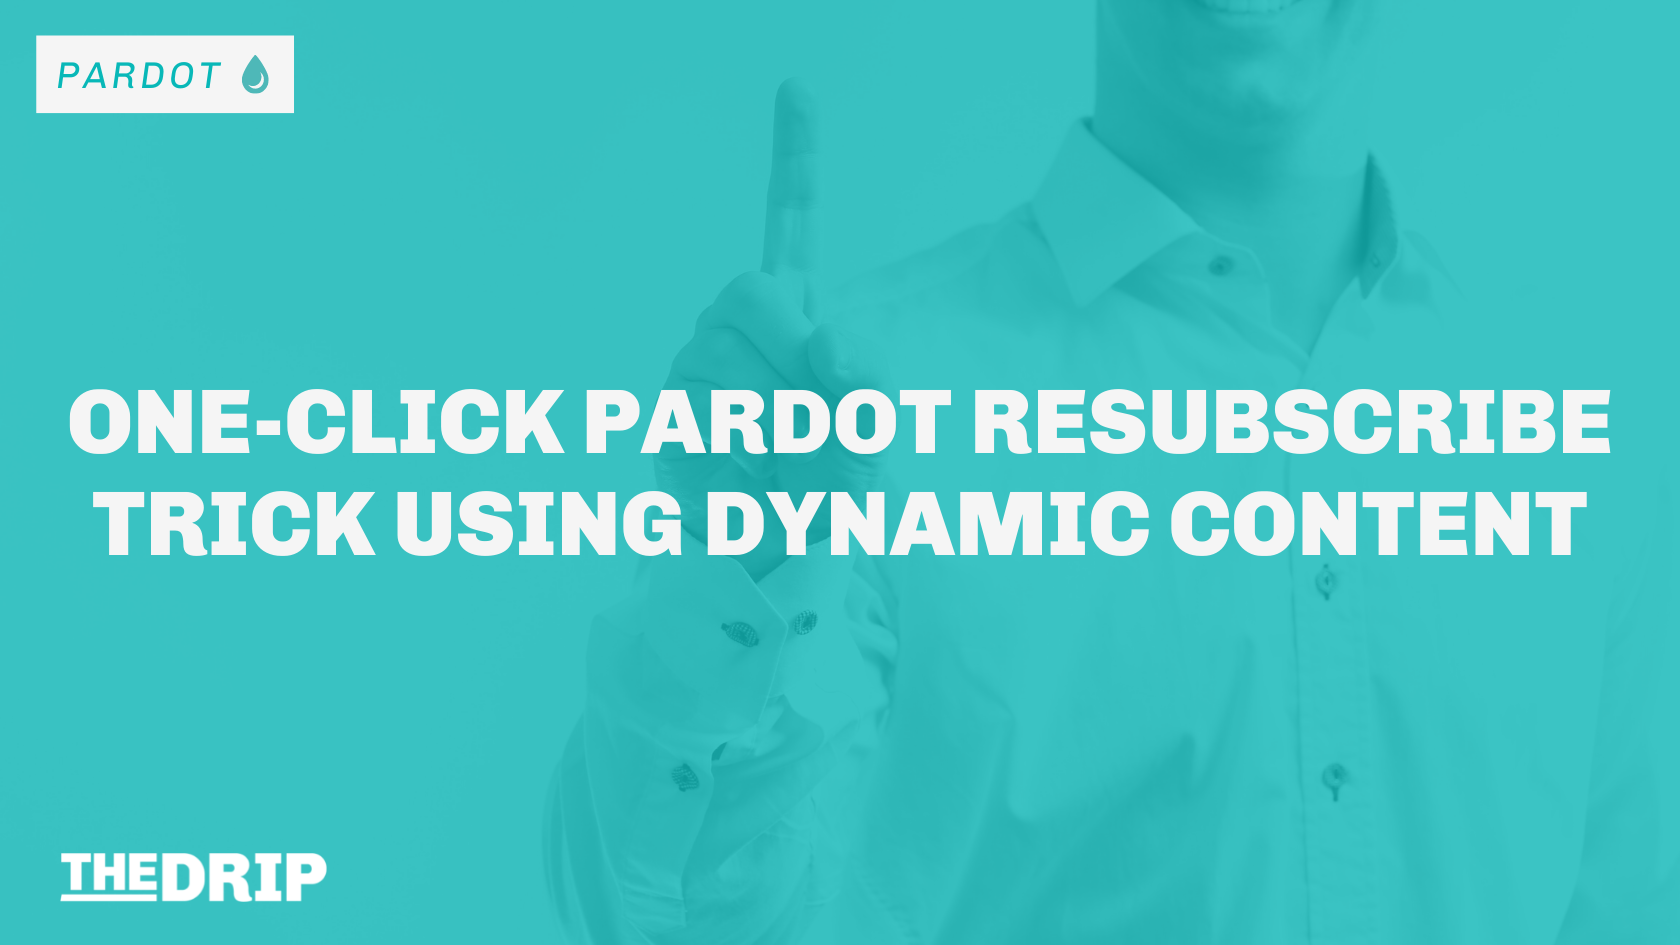 One-click Pardot Resubscribe Trick Using Dynamic Content